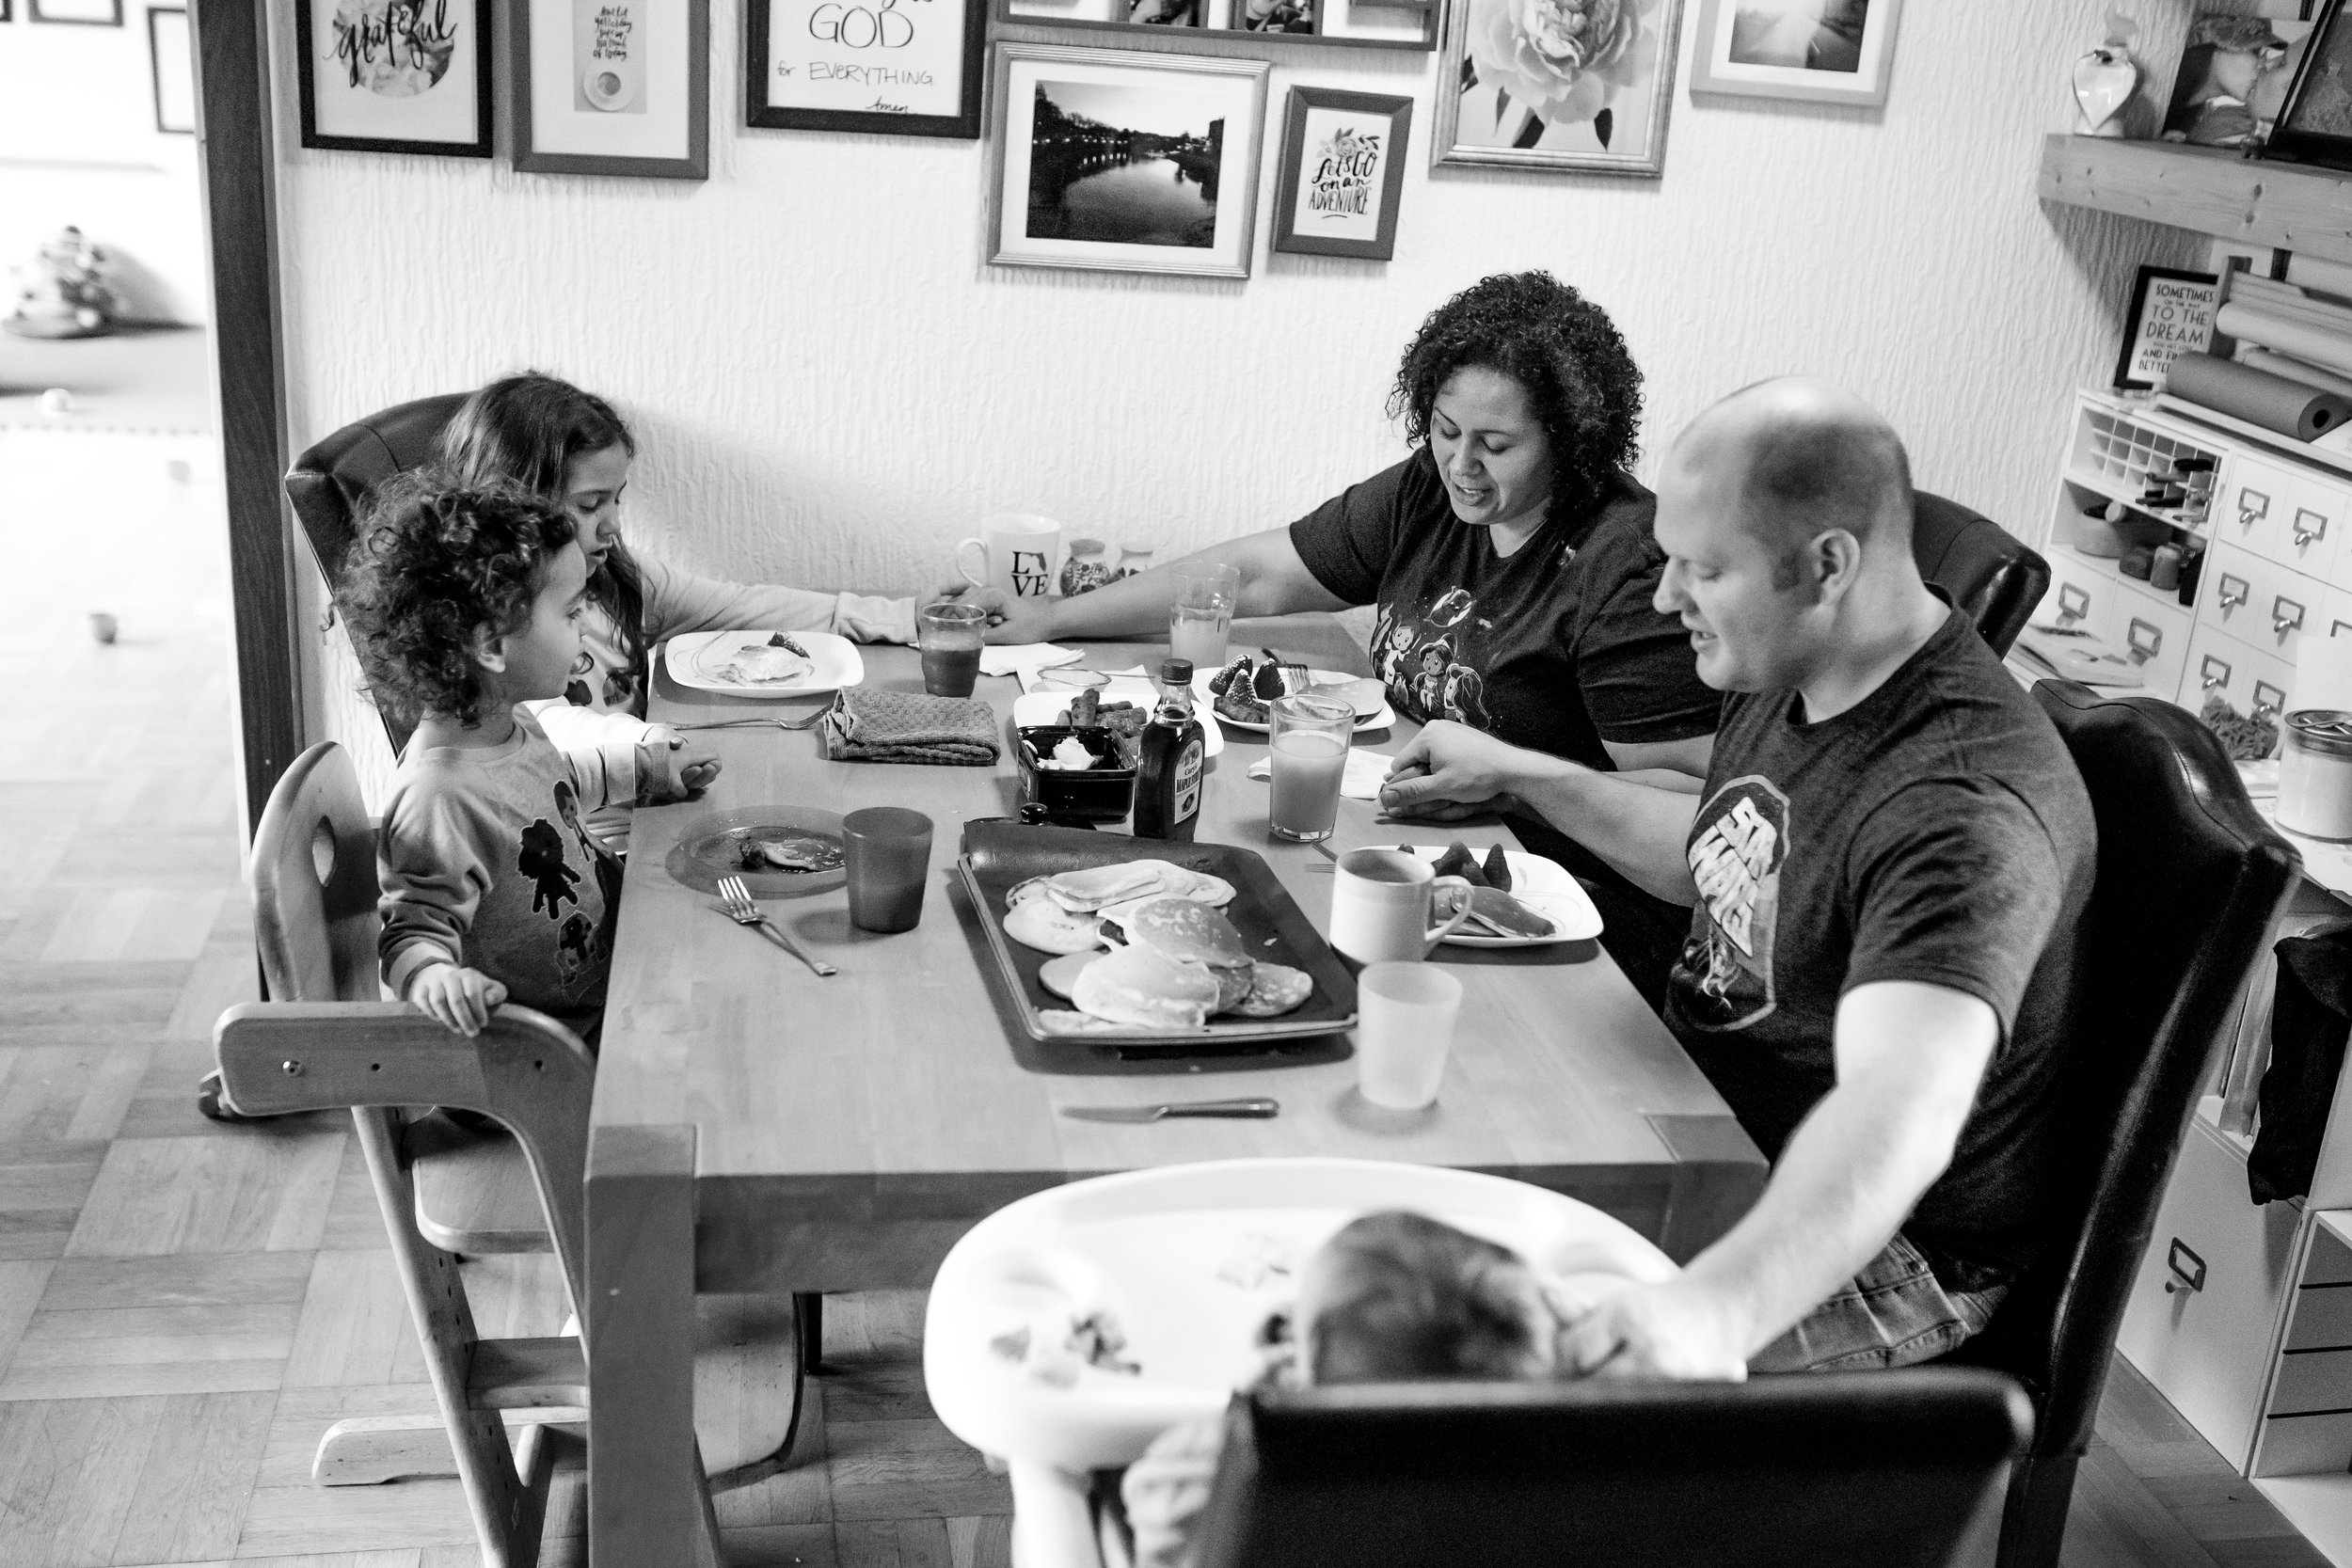 Family prays at table before meal